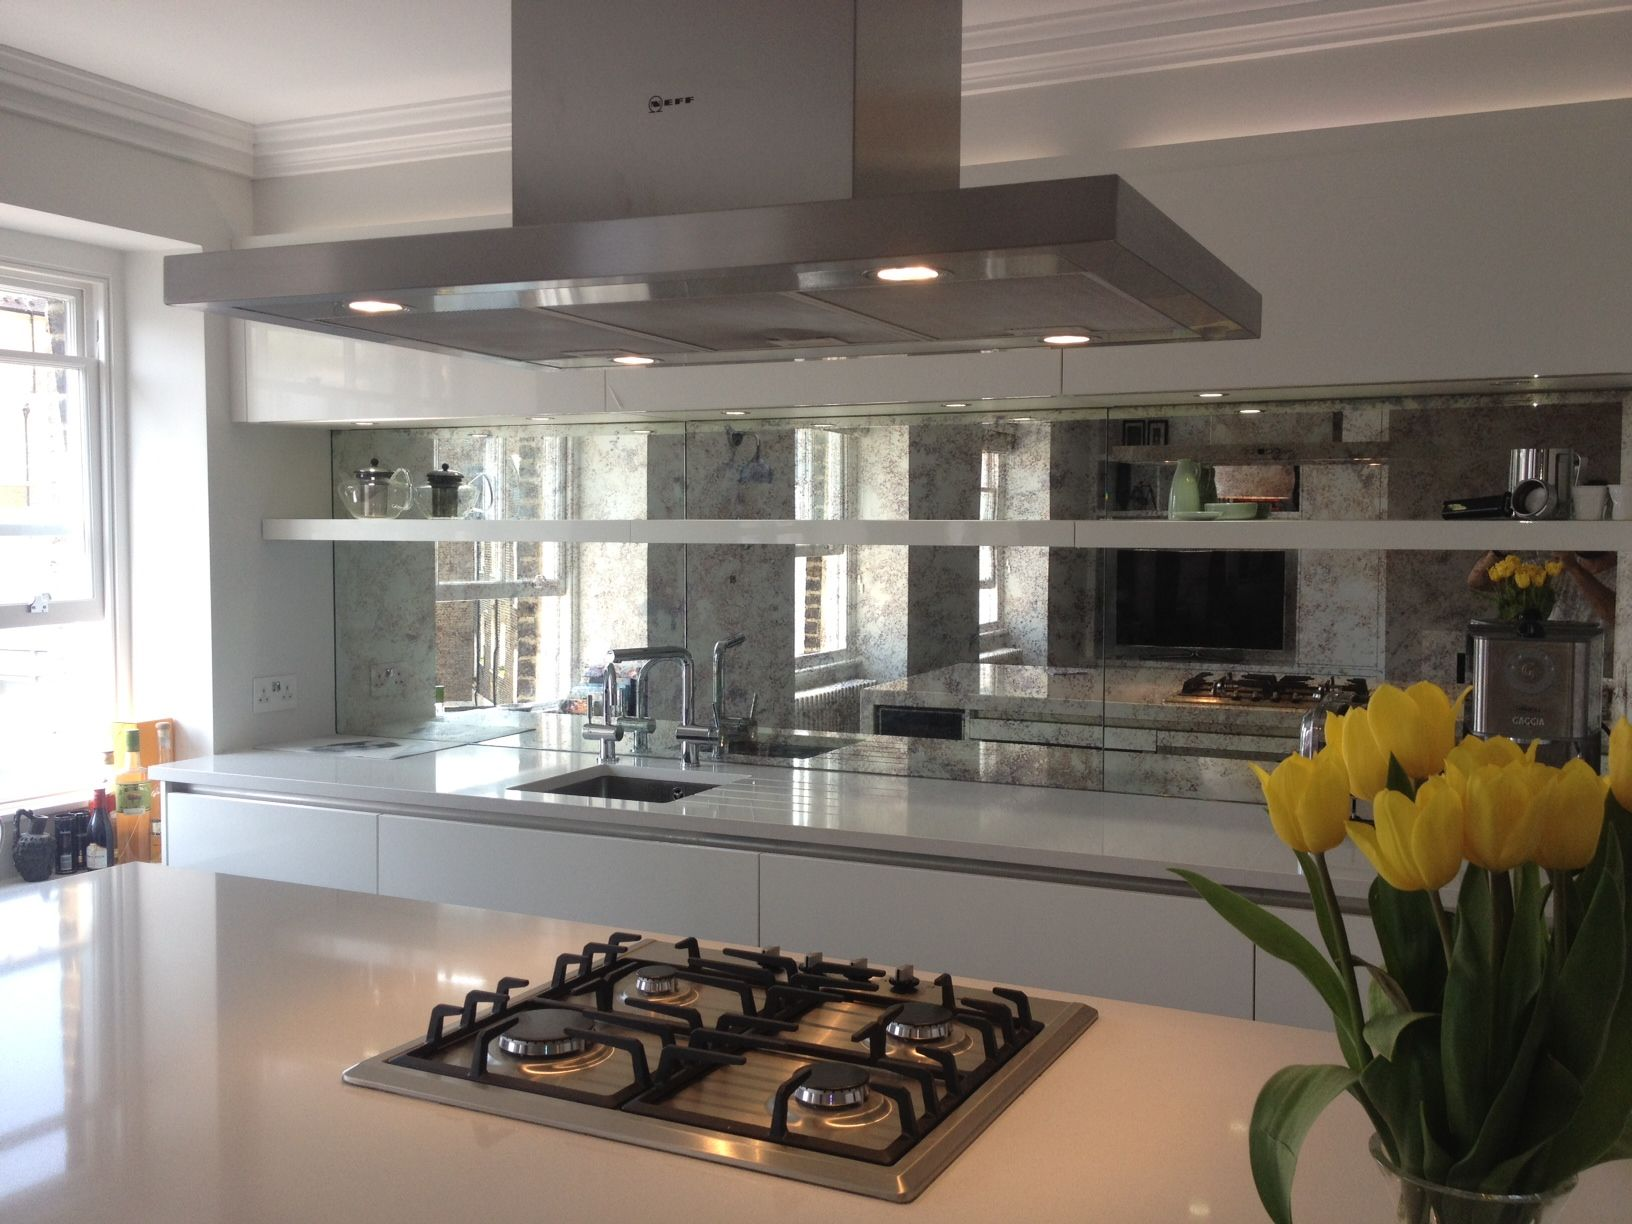 Mirrored Kitchen Splashbacks Saligo Design Presents A Stunning Collection Of Mirrored Kitchen Splashbacks For Decoration